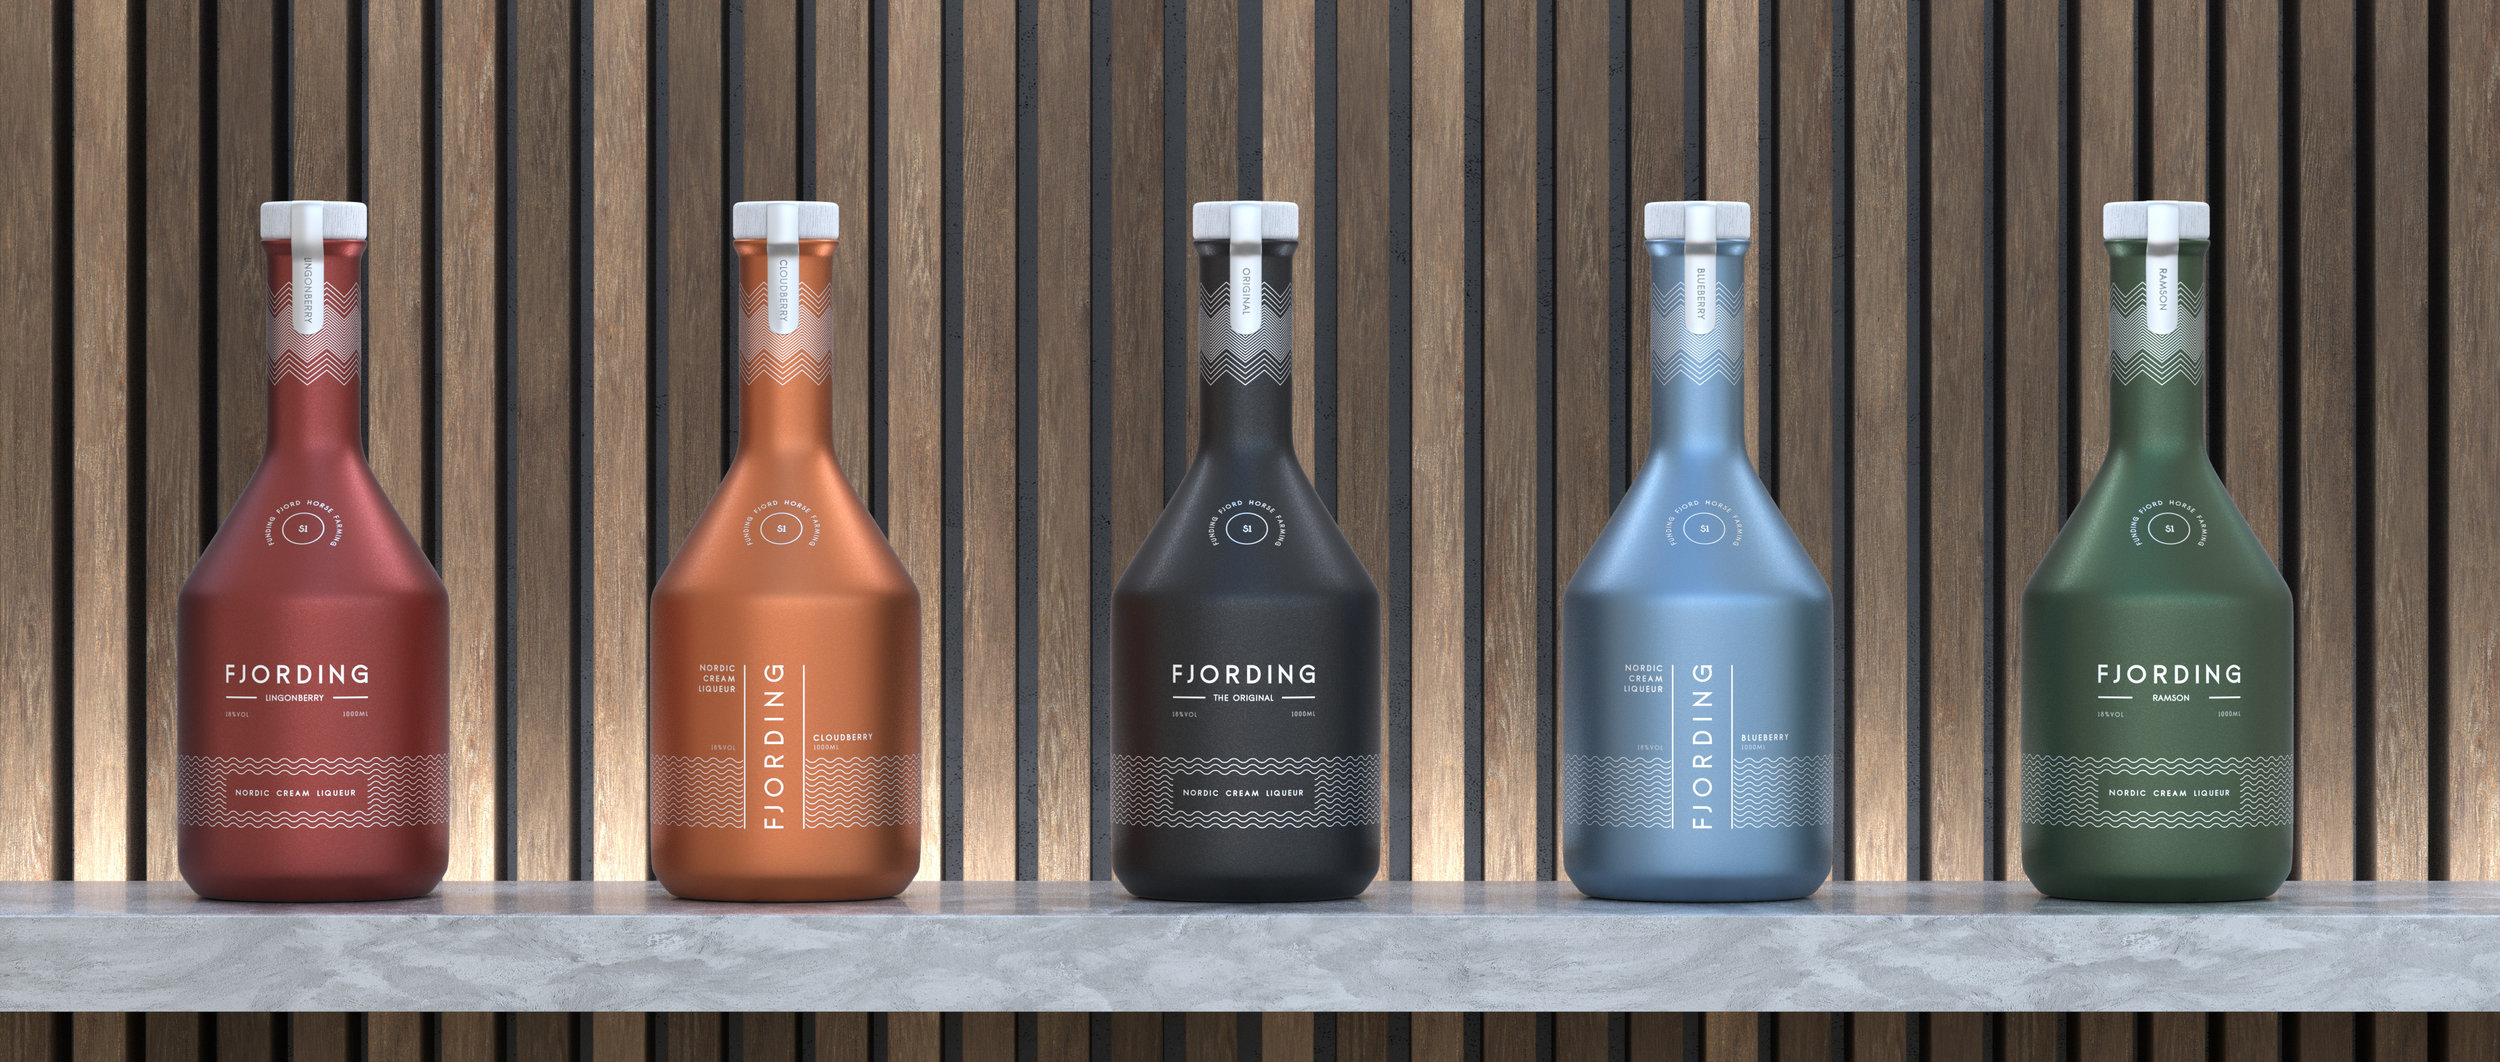 Fjording is going to develop and launch a variety of cream liqueurs based on Nordic ingredients. The picture above is an early design sketch of potential future bottles.